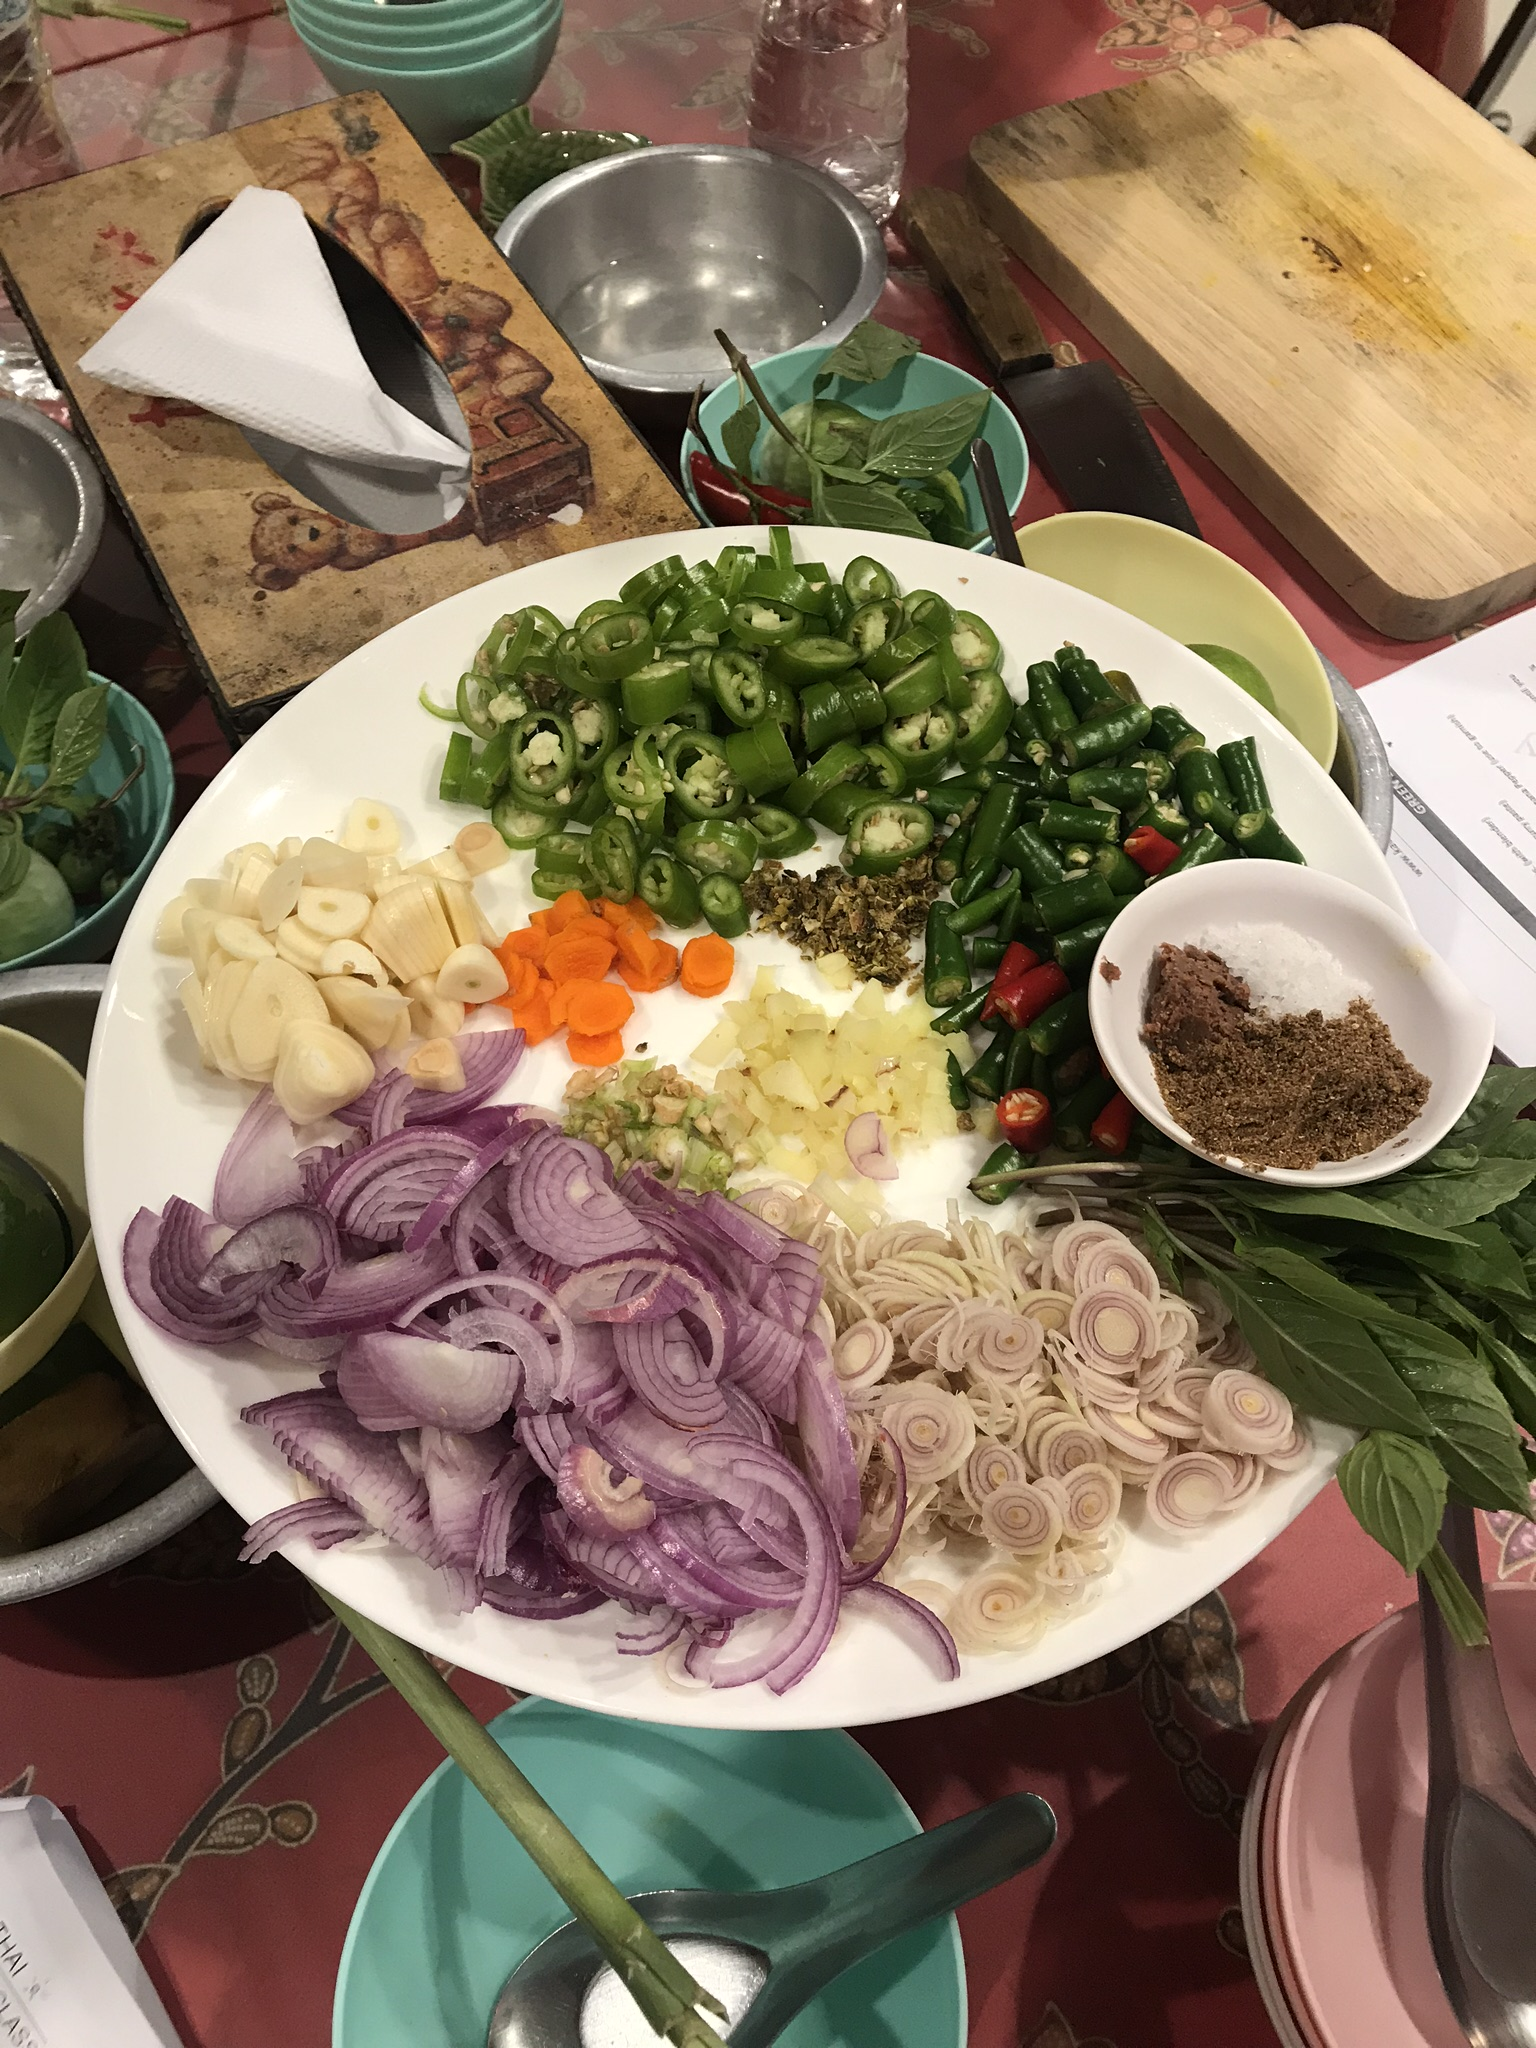 thailand-cooking pic.jpg